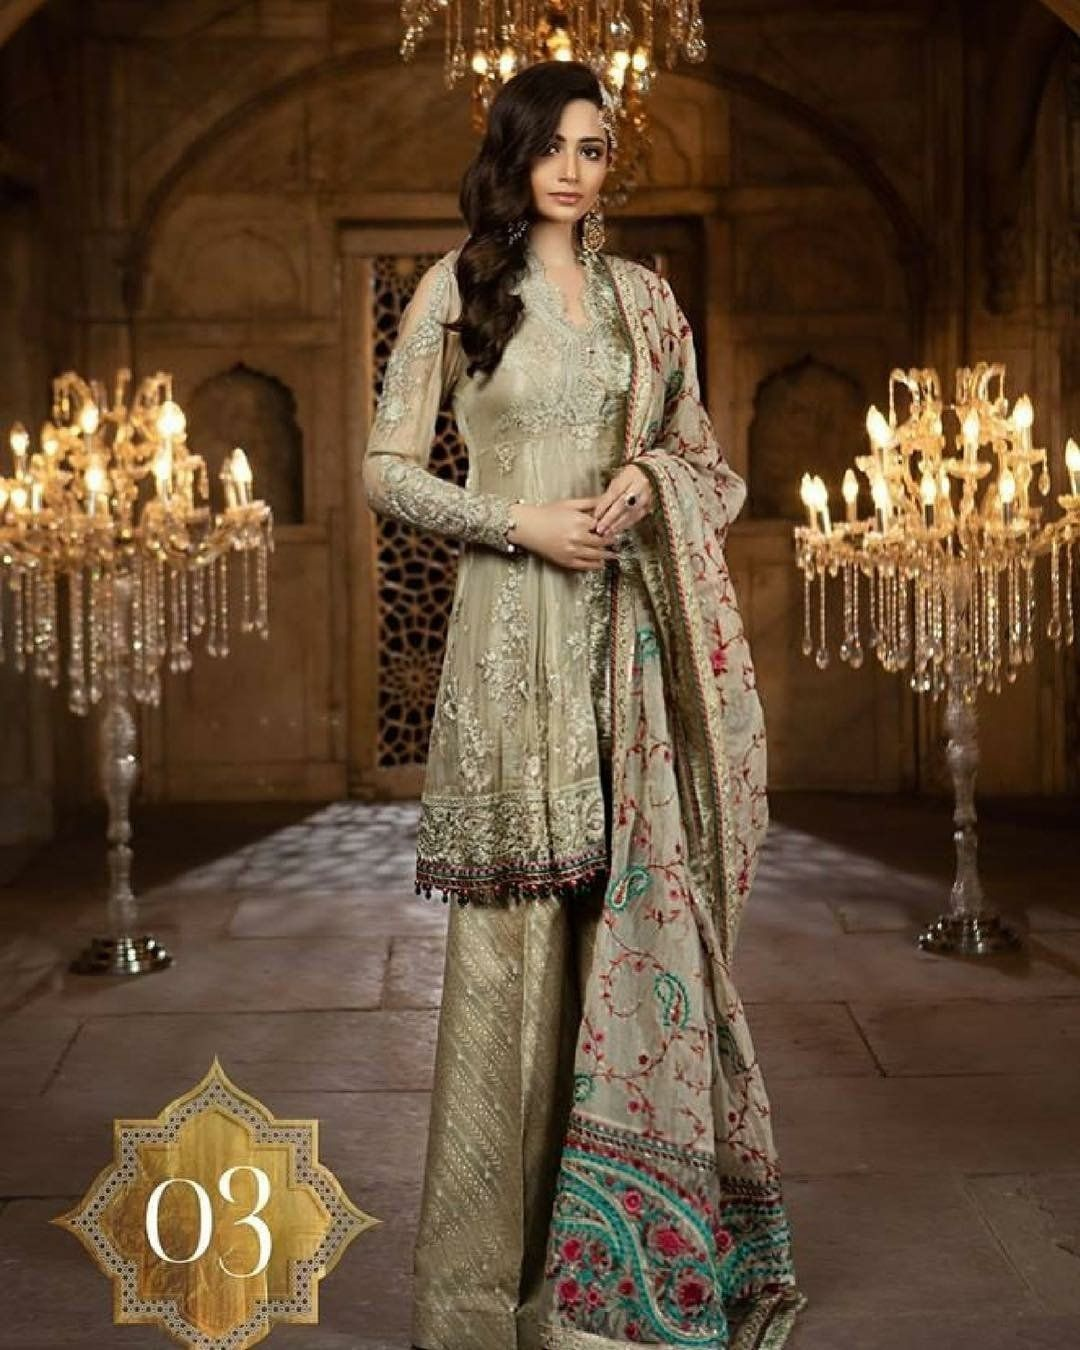 Pakistani designer dress chiffon by maria b in skin gold color model